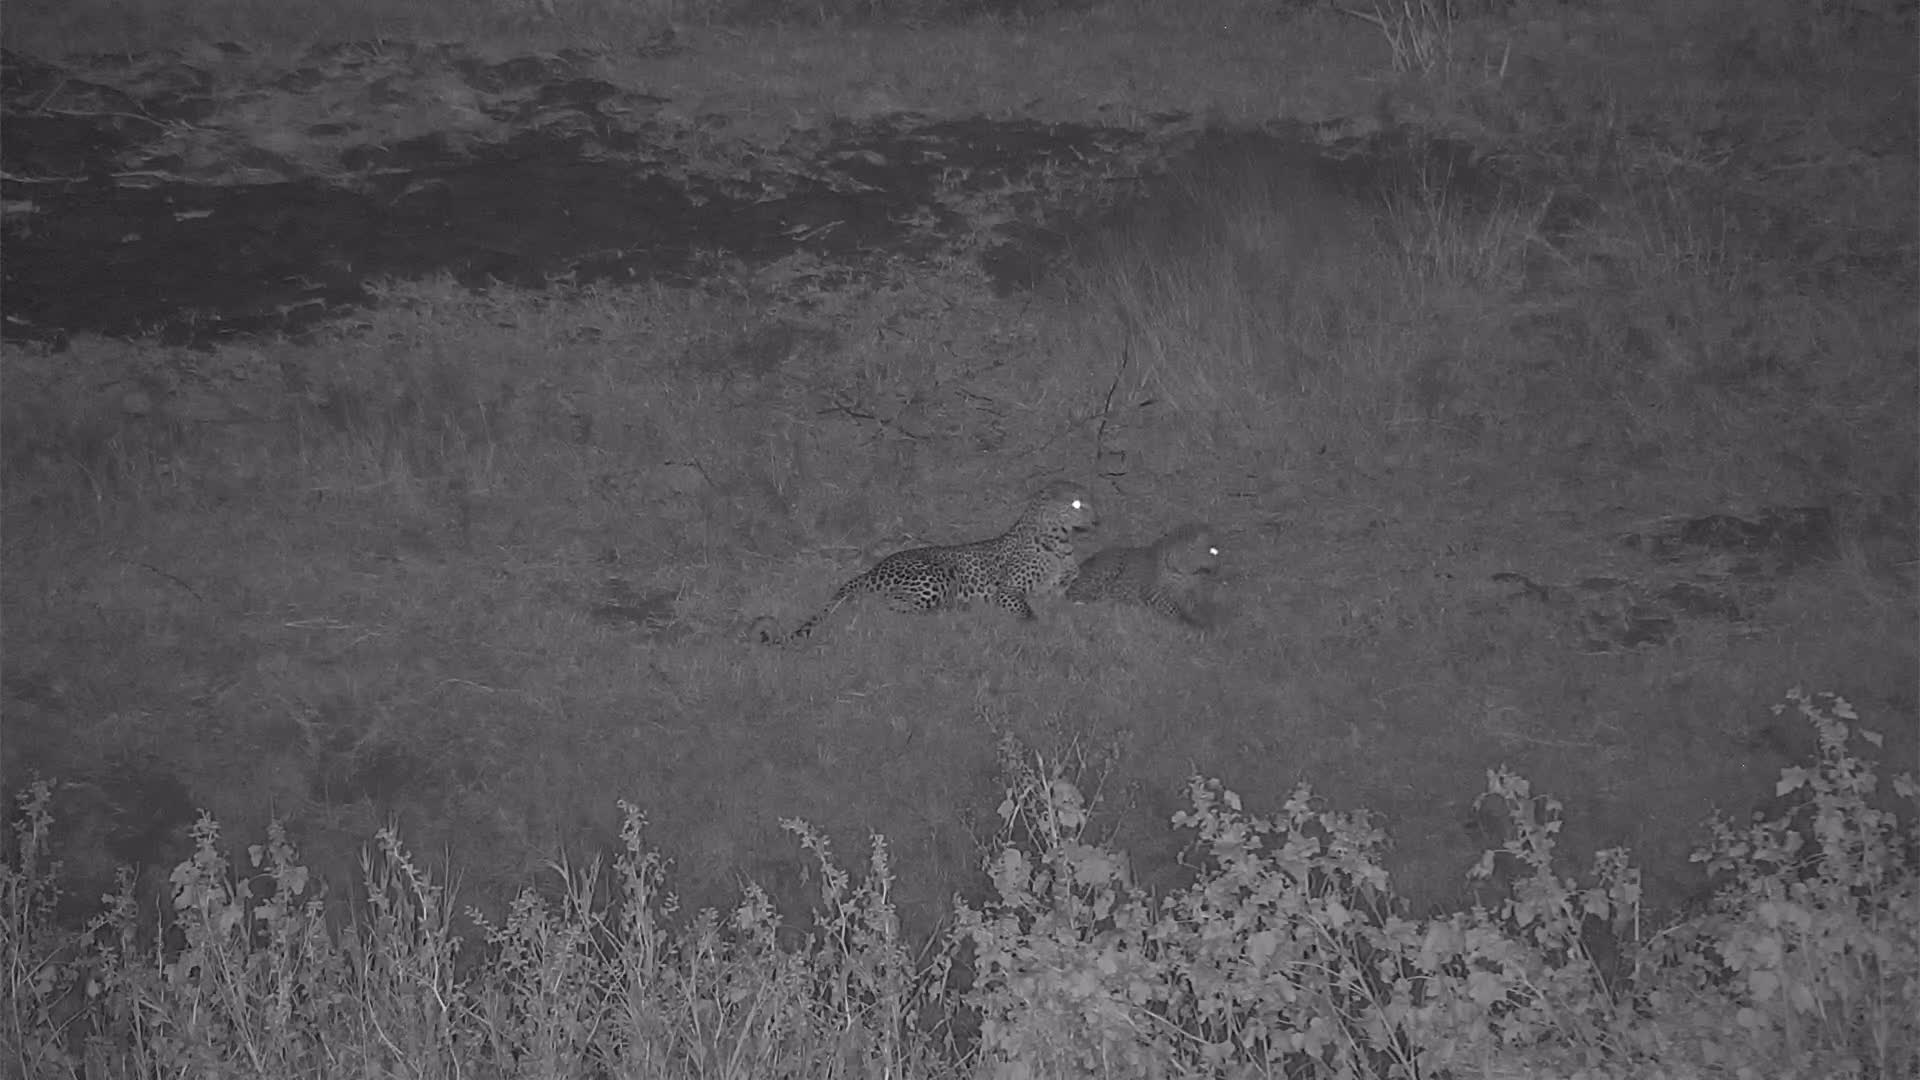 VIDEO:  Leopards:  Mom and her young cub